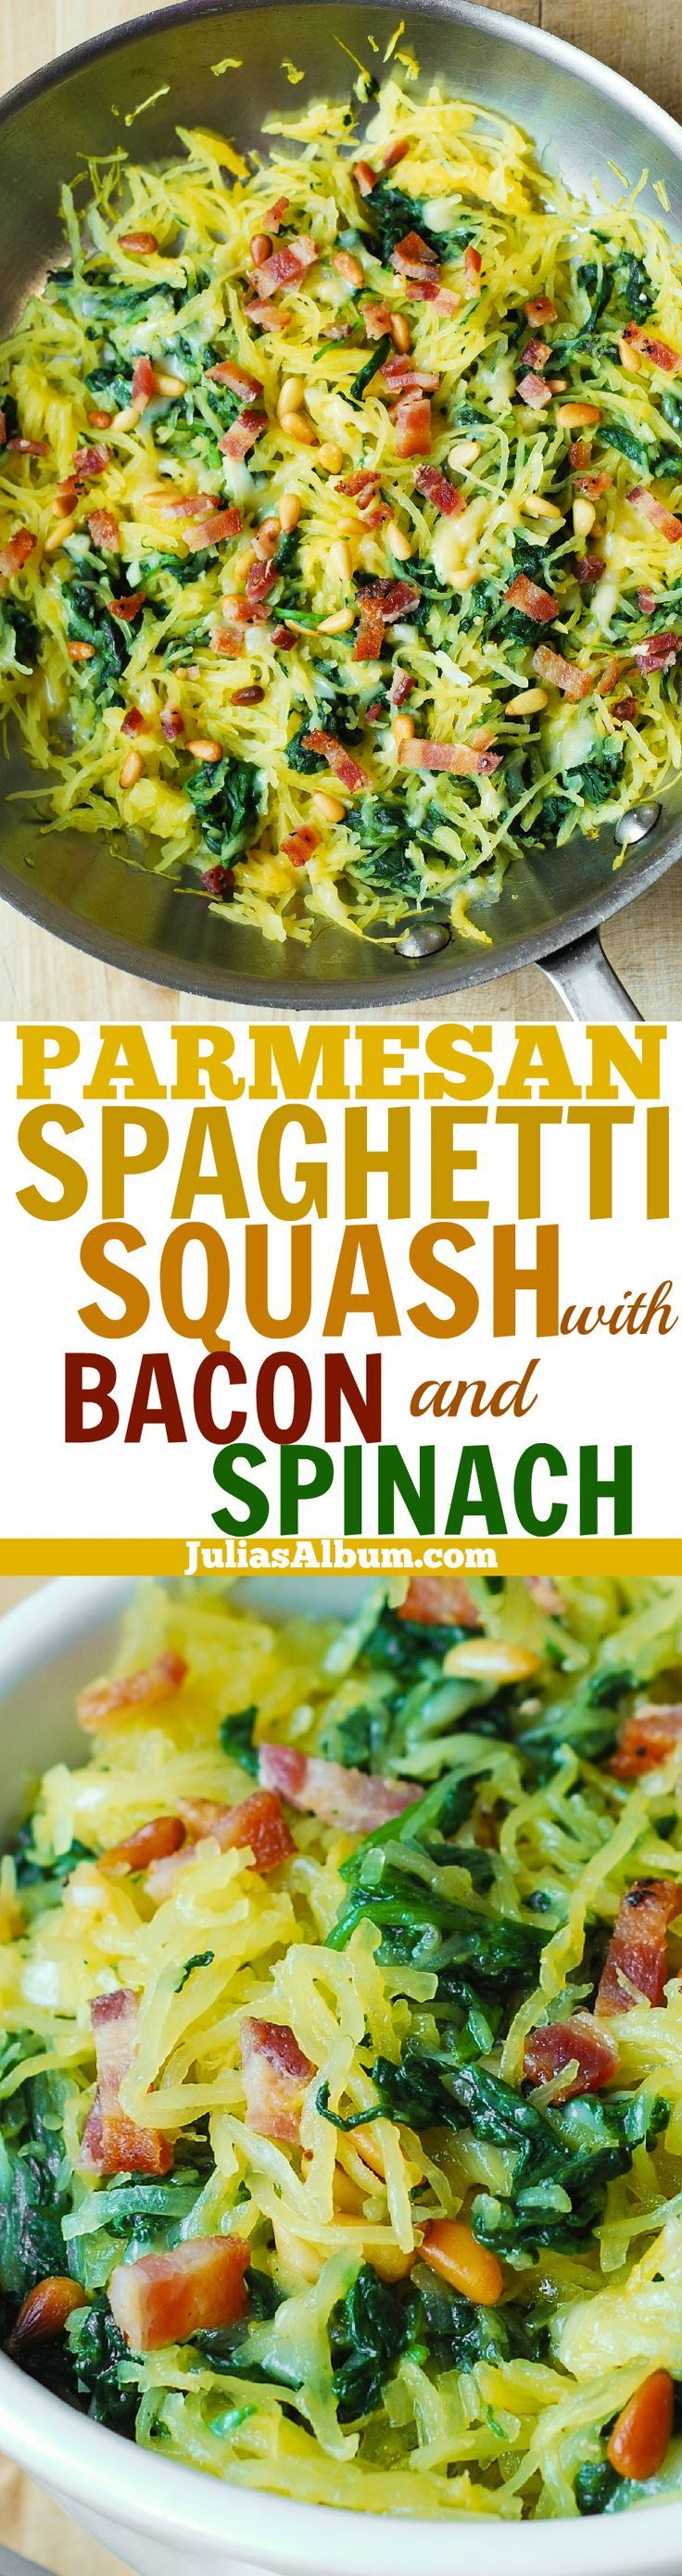 Garlic Spaghetti Squash, Spinach, and Bacon, + melted Parmesan cheese and toasted pine nuts. Delicious, healthy, gluten free!